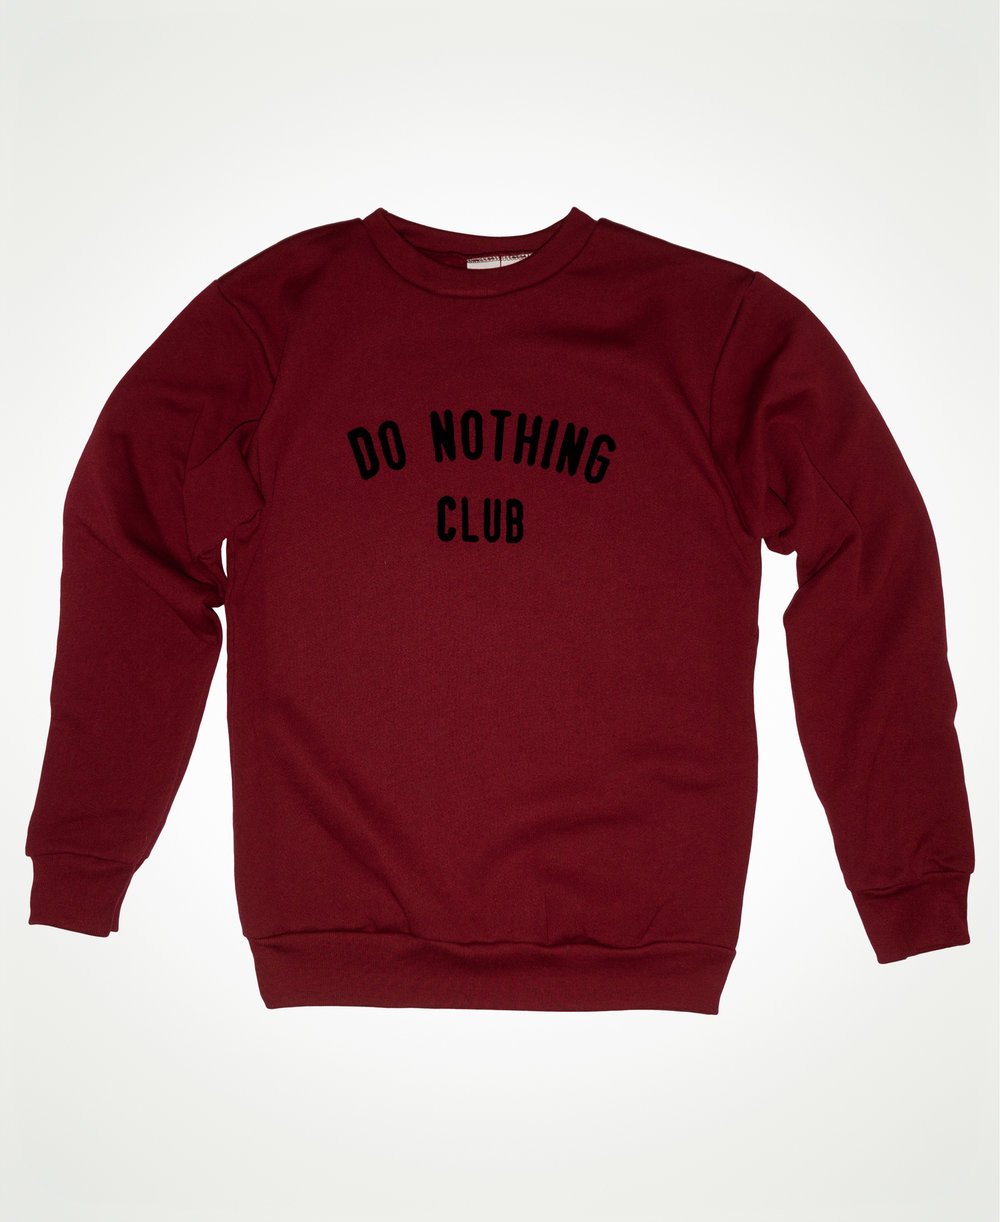 do-nothing-club-burgundy-sweater.jpg